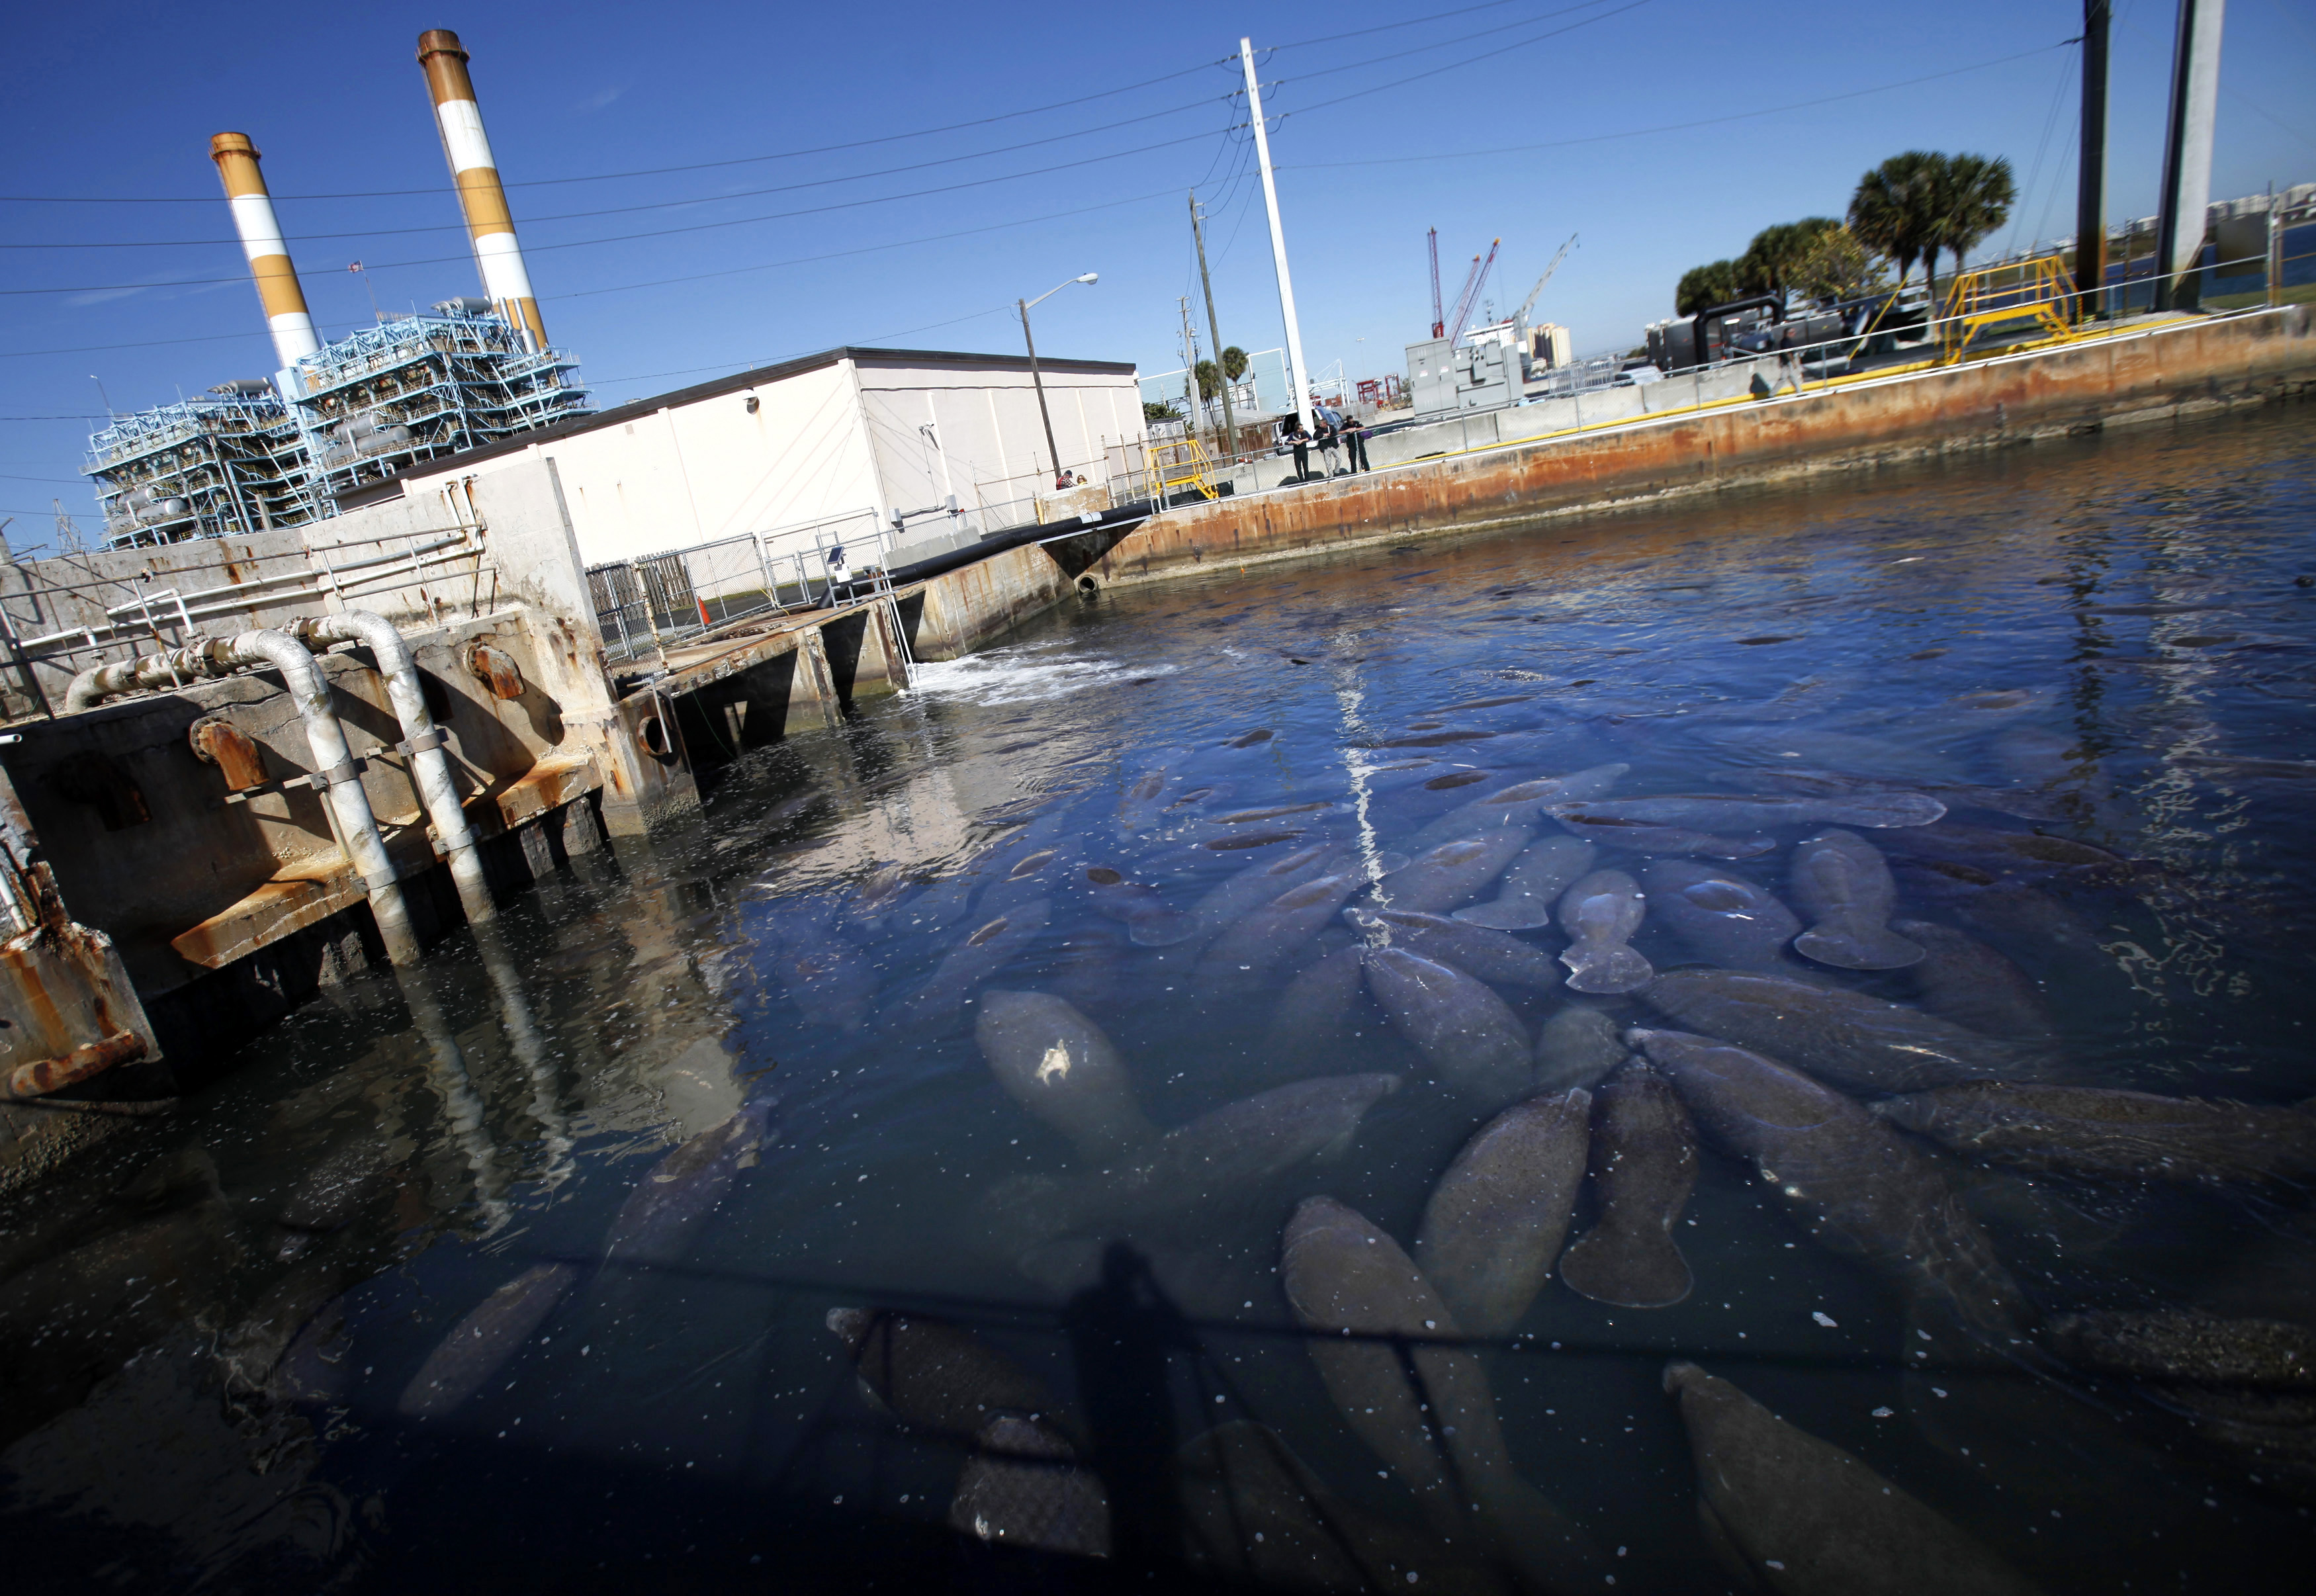 Manatees gather near the outlet where Florida Power & Light Company pipes warm the water, at an inactive power plant undergoing renovation works in Riviera Beach, Florida, Jan. 7, 2010. With 61 degrees Fahrenheit being the minimum temperature that a manatee needs to survive, FPL is helping prevent deaths by turning on the heaters at the plant for the manatees. Photo Carlos Barria/Reuters